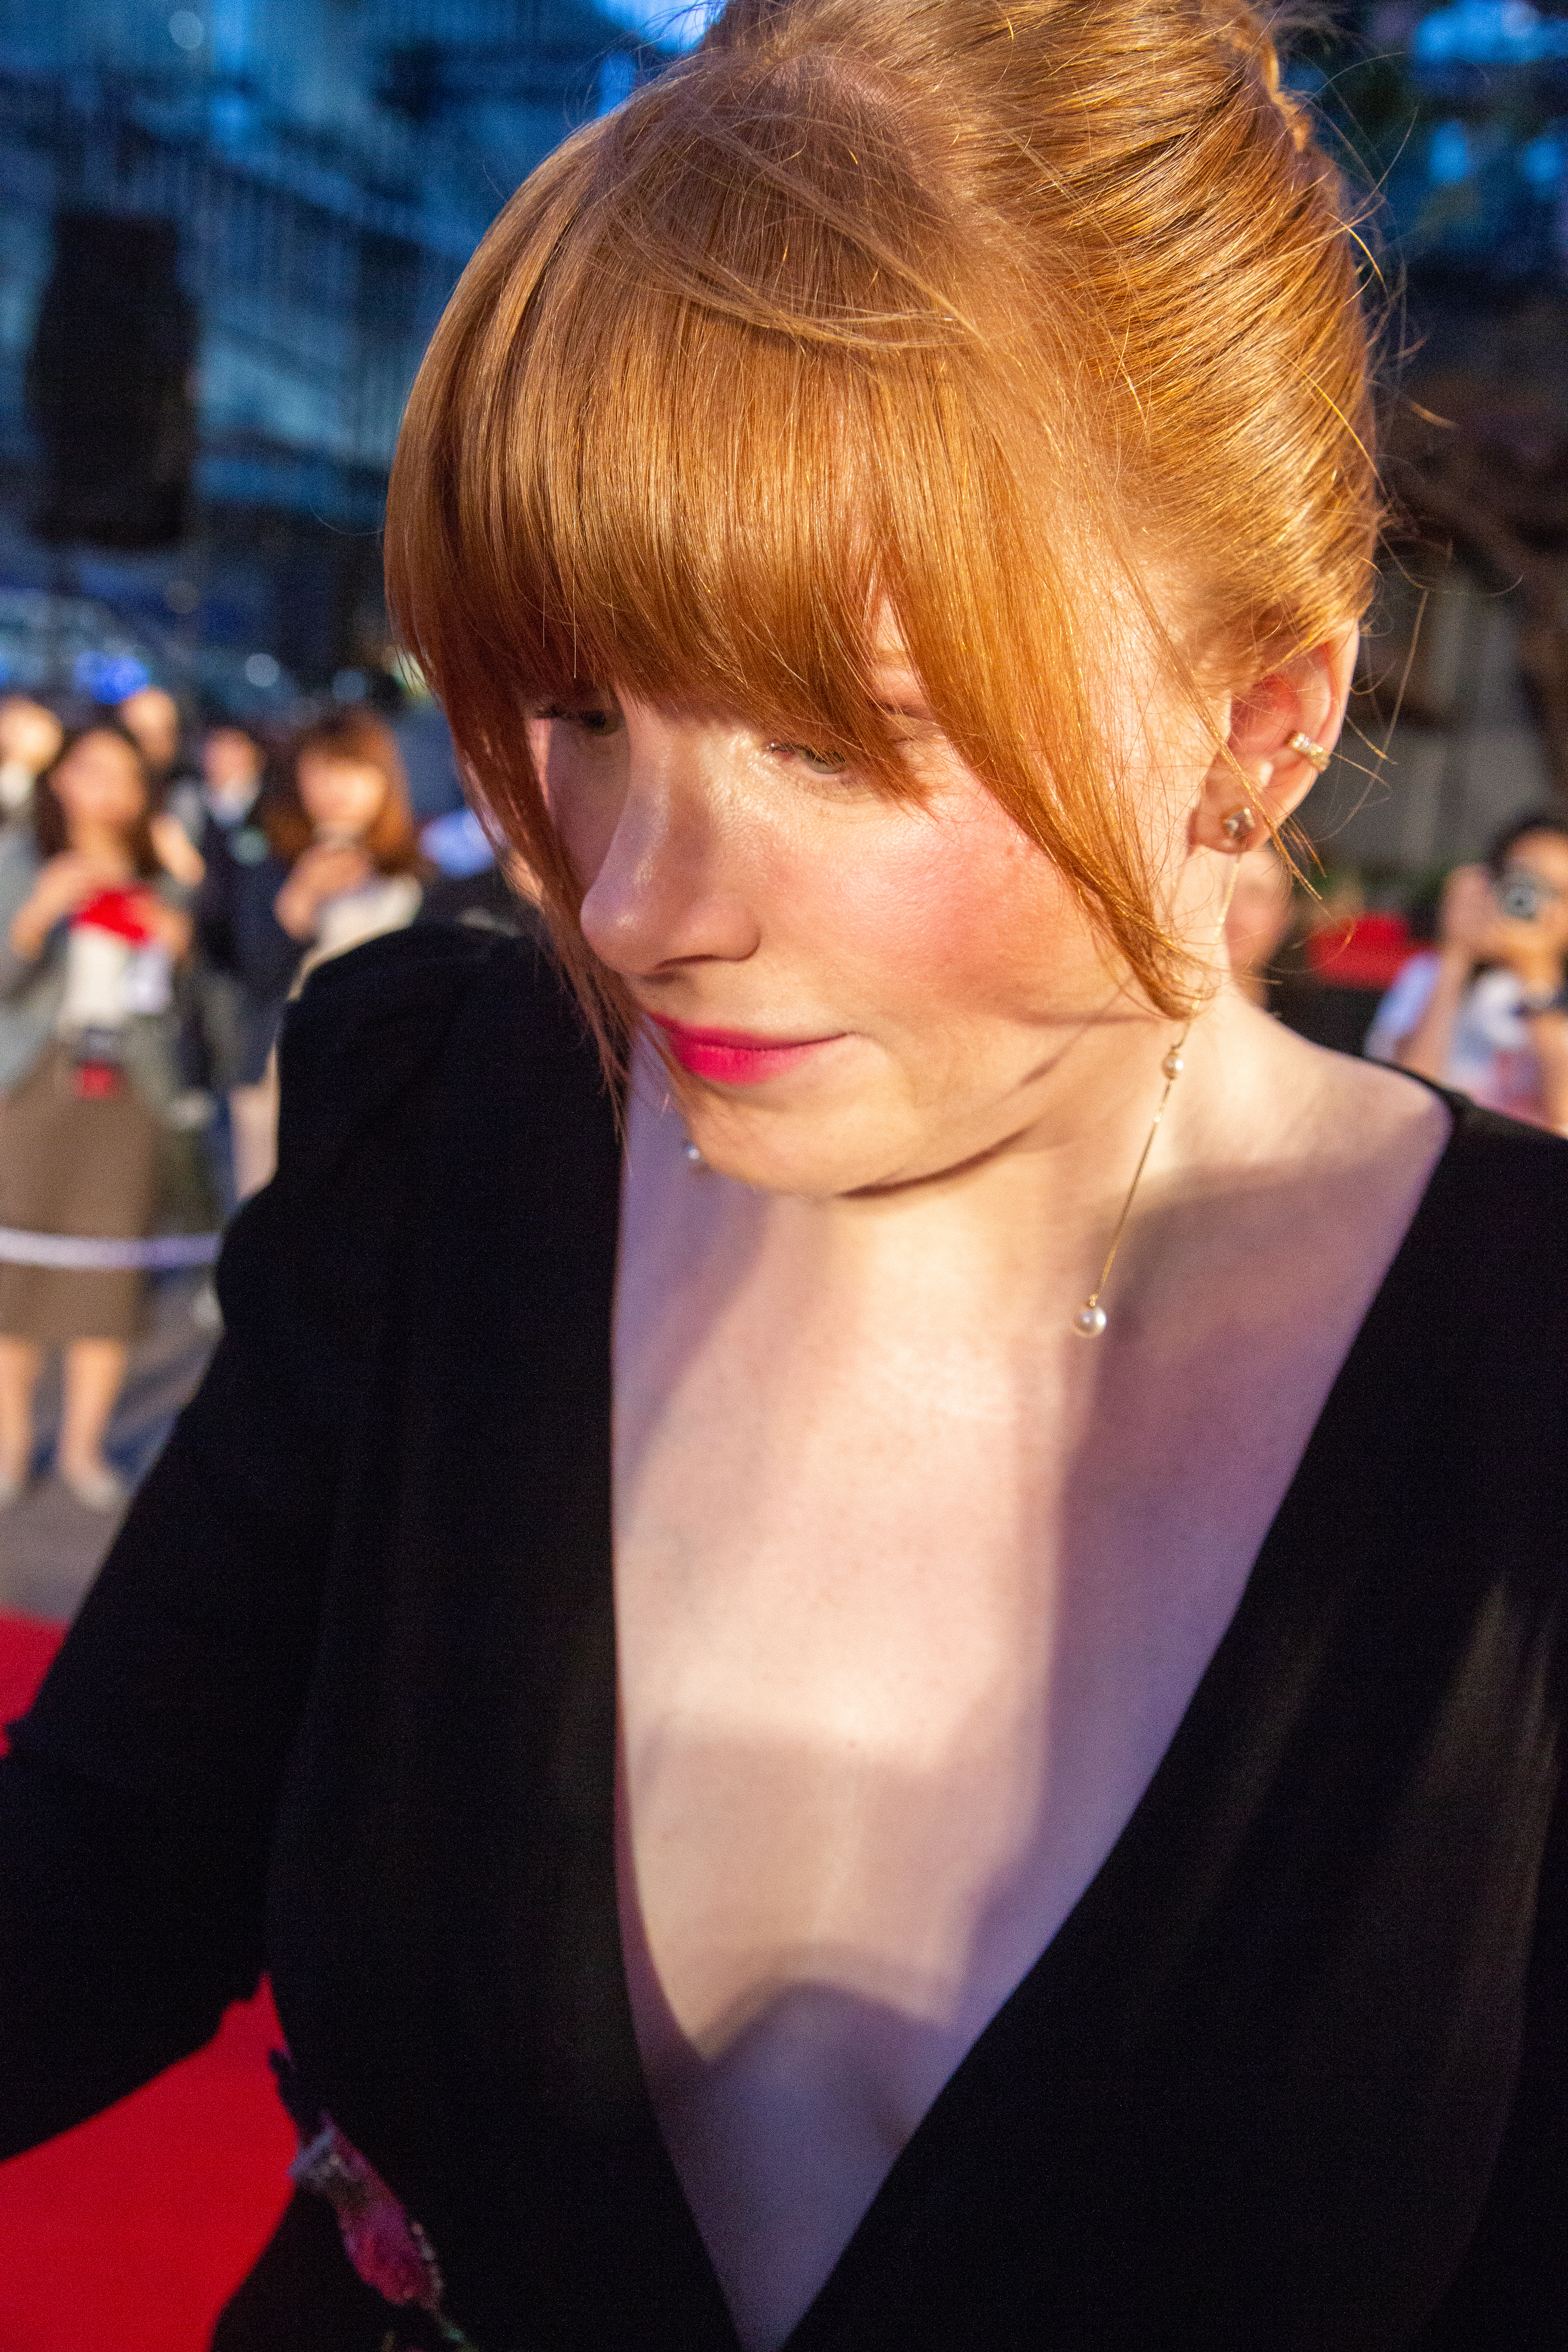 Cleavage Bryce Dallas Howard naked (17 photo), Pussy, Leaked, Feet, cleavage 2006